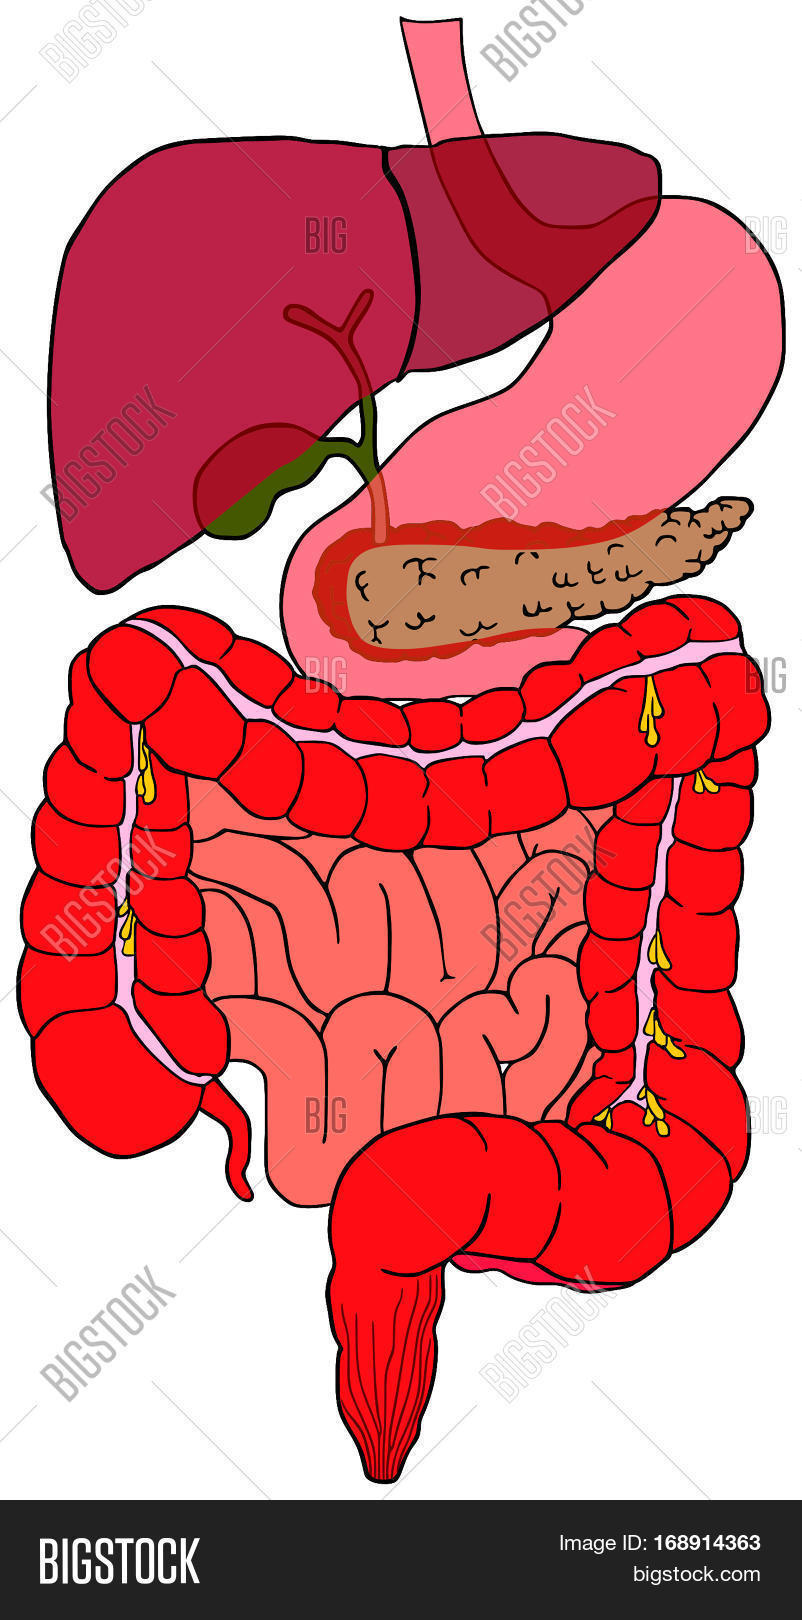 Human digestive system image photo free trial bigstock human digestive system tract vector diagram with all parts stomach bladder liver pancreas large small intestine ccuart Images